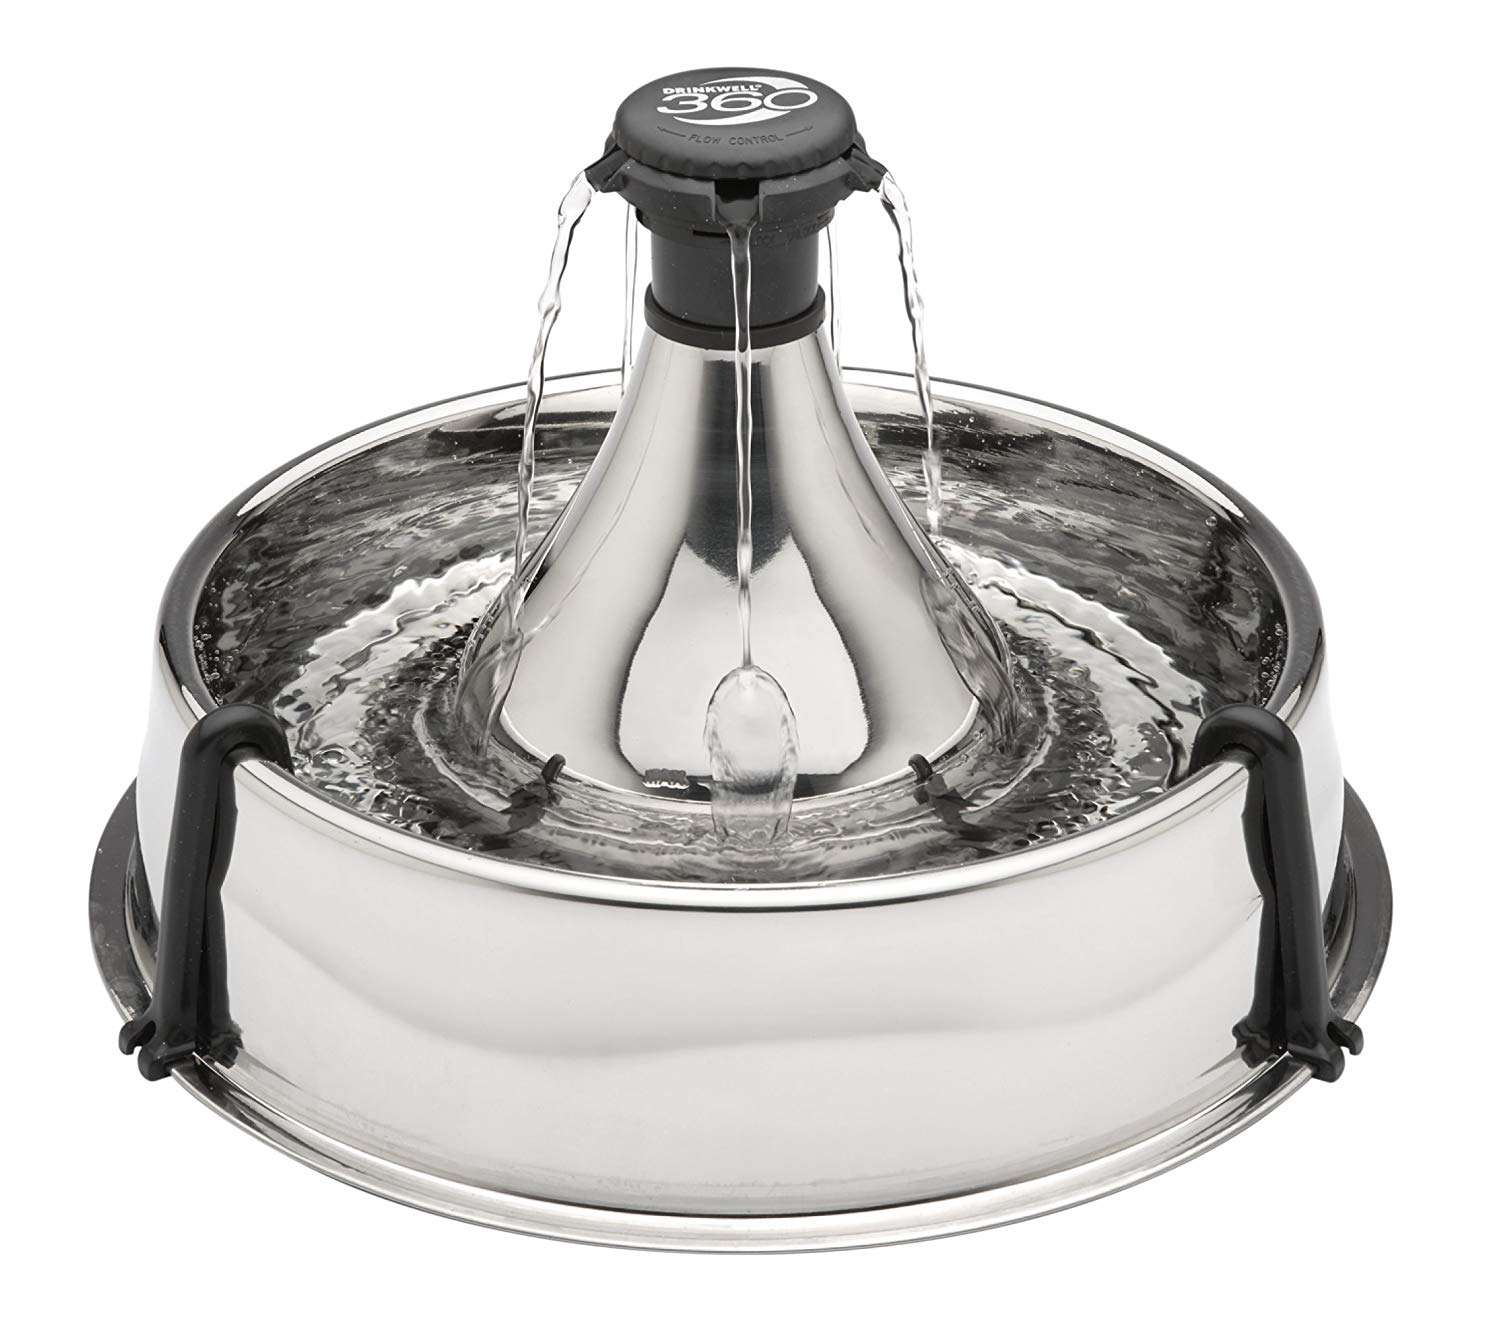 PetSafe Drinkwell 360 Multi-Pet Stainless Steel Dog and Cat Fountain